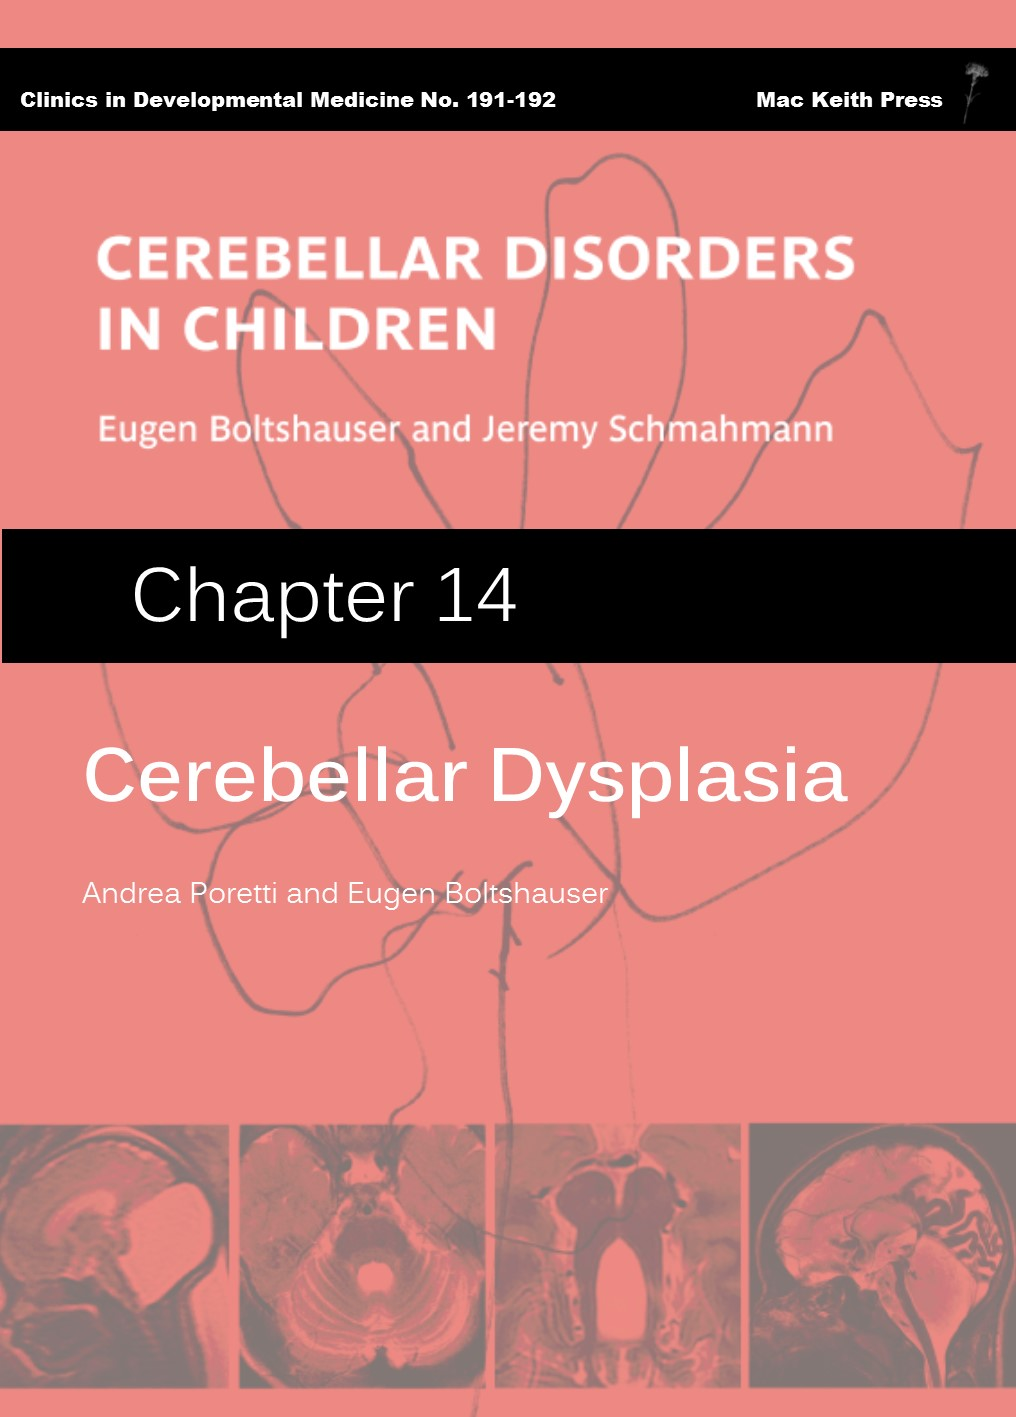 Cerebellar Dysplasia - Cerebellar Disorders in Children (Chapter 14) COVER